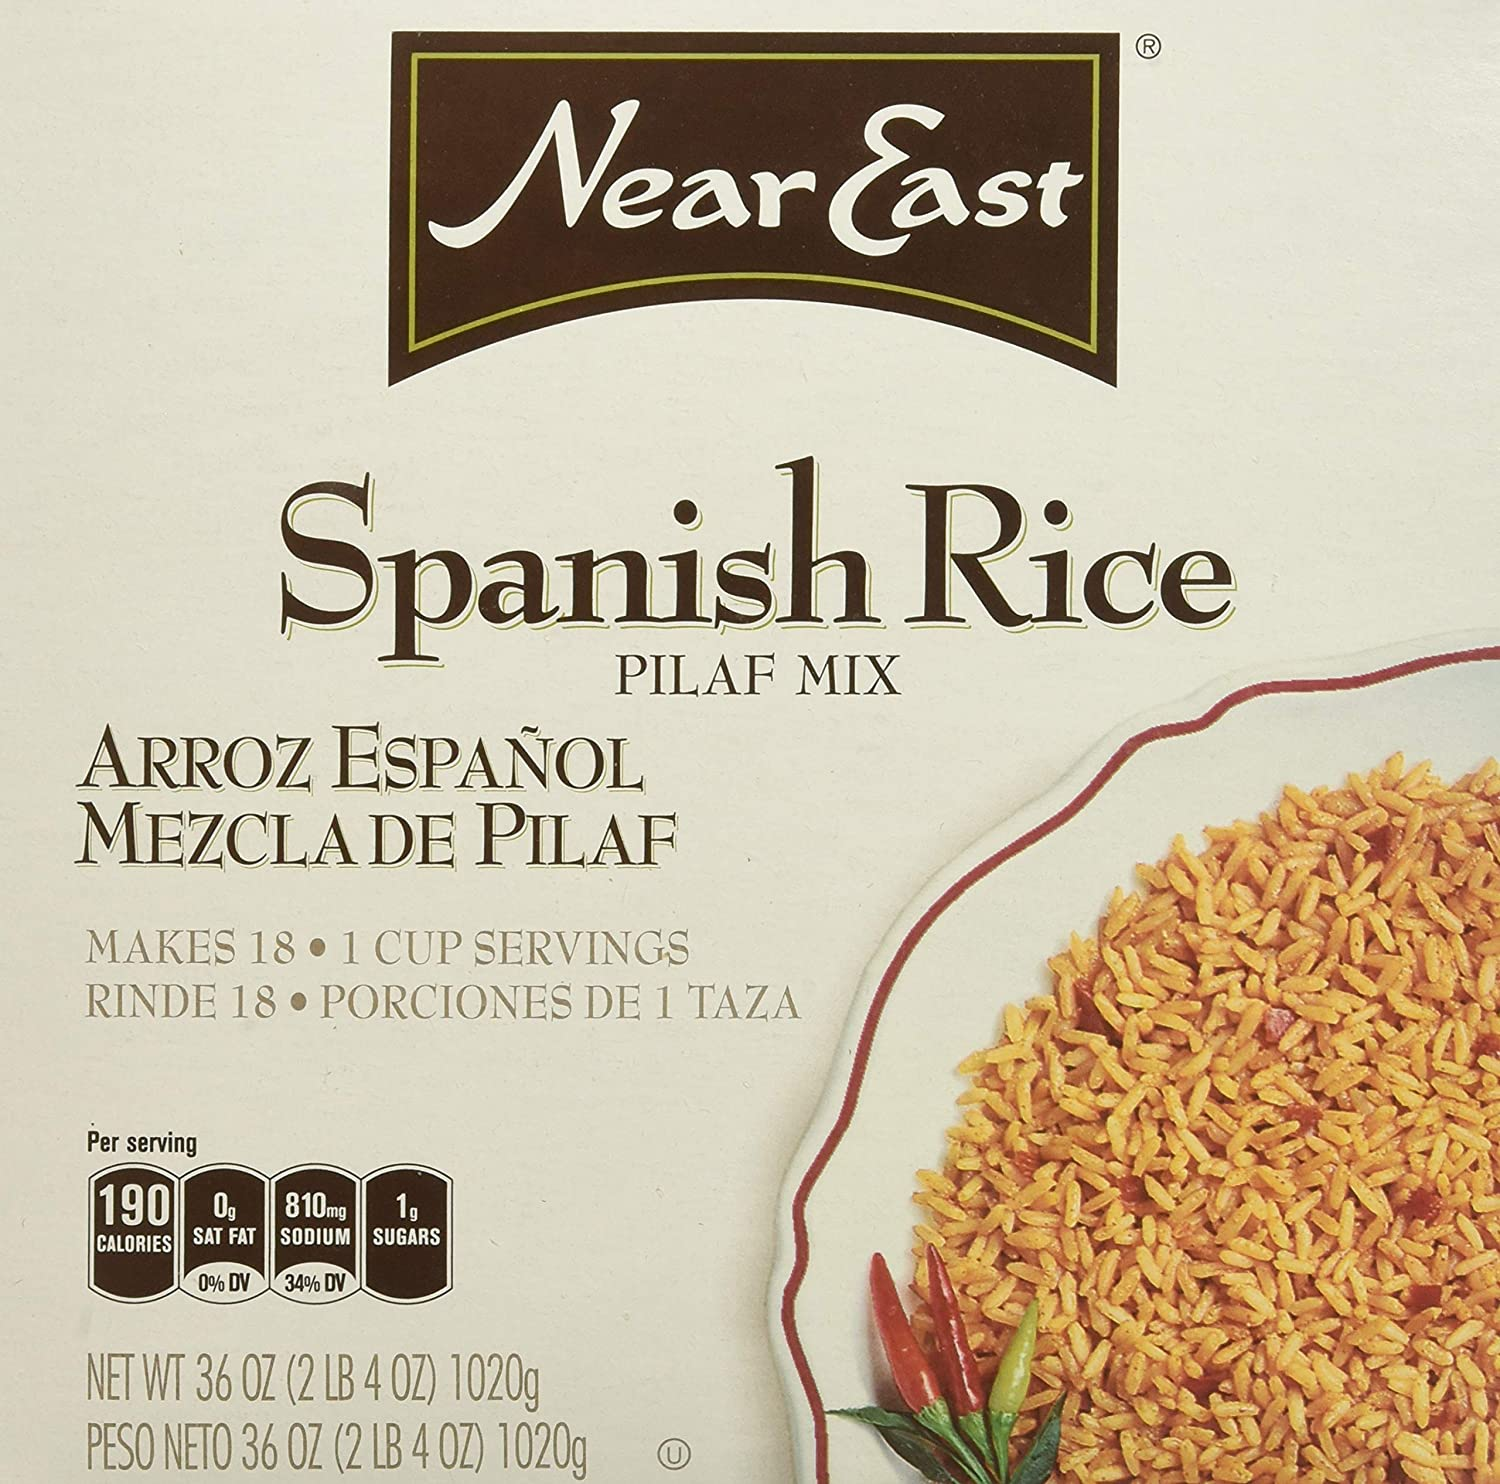 Quaker Near East Spanish Rice, 6 Count (Pack of 6)